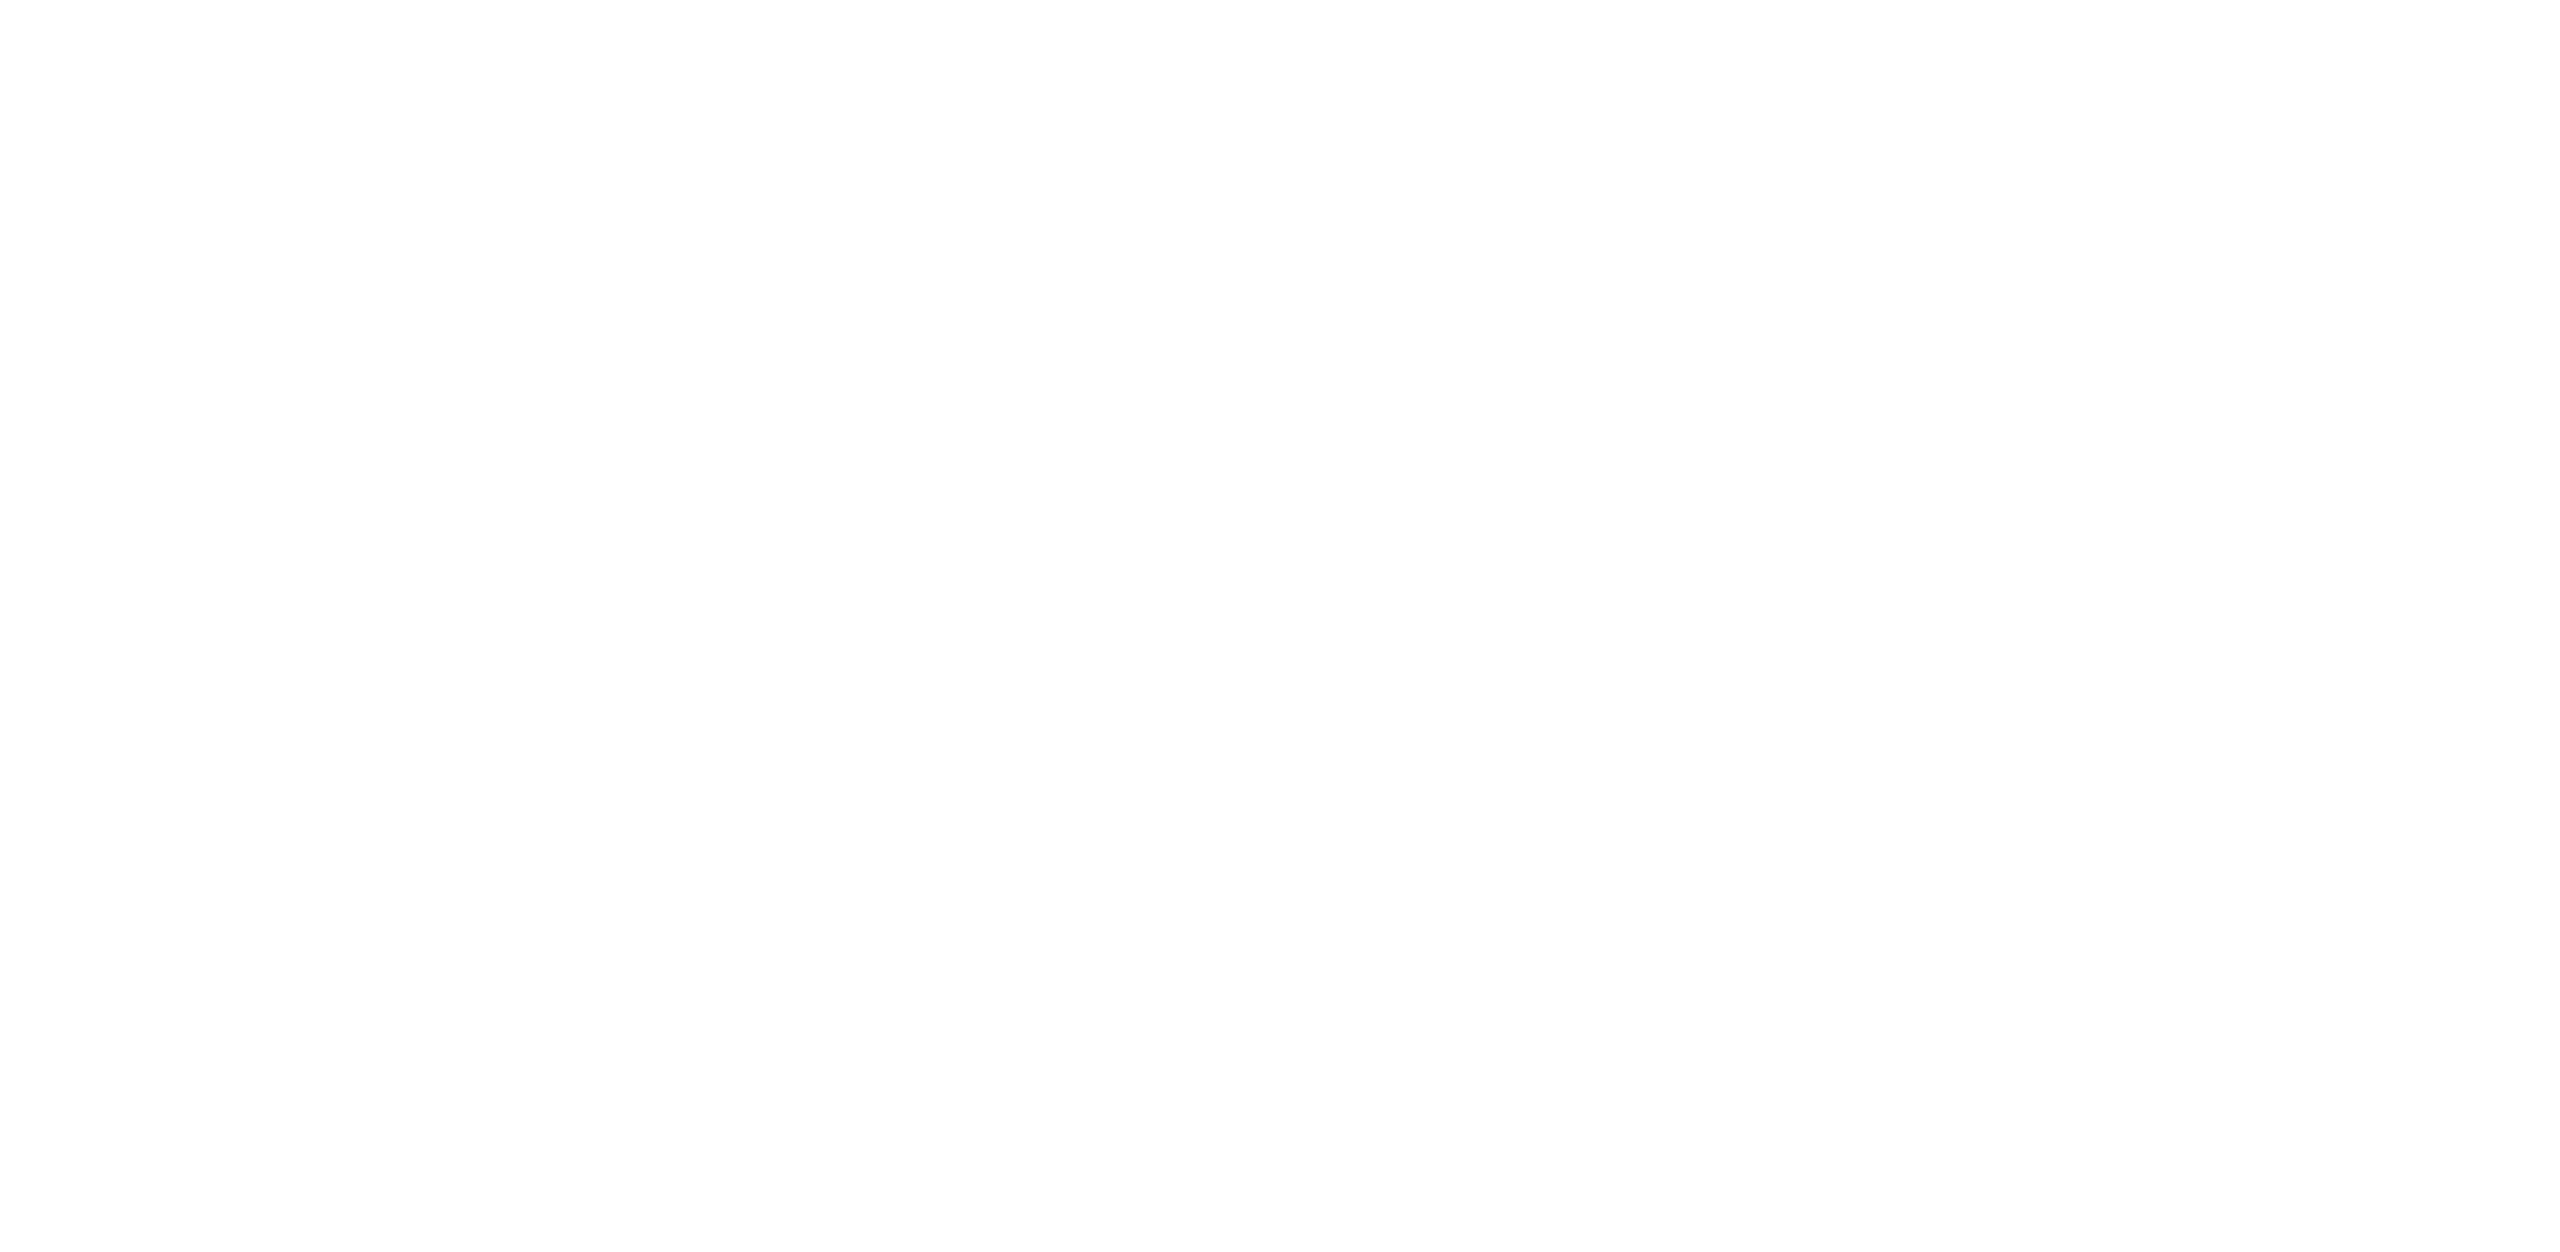 justice-is-for-everyone_v4